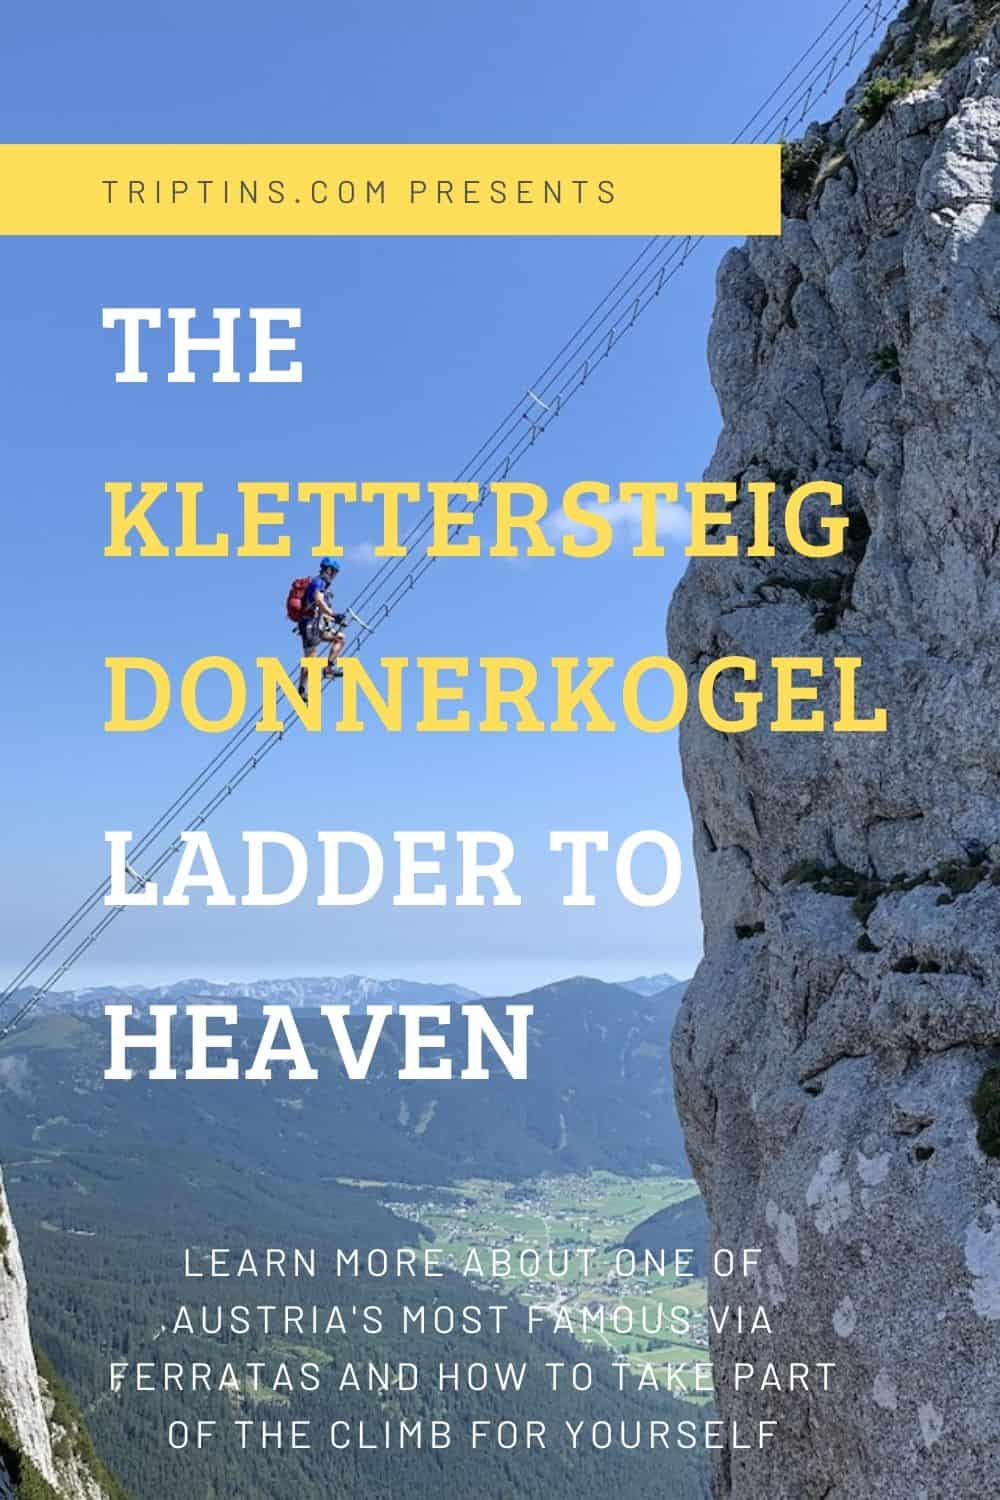 The Klettersteig Donnerkogel